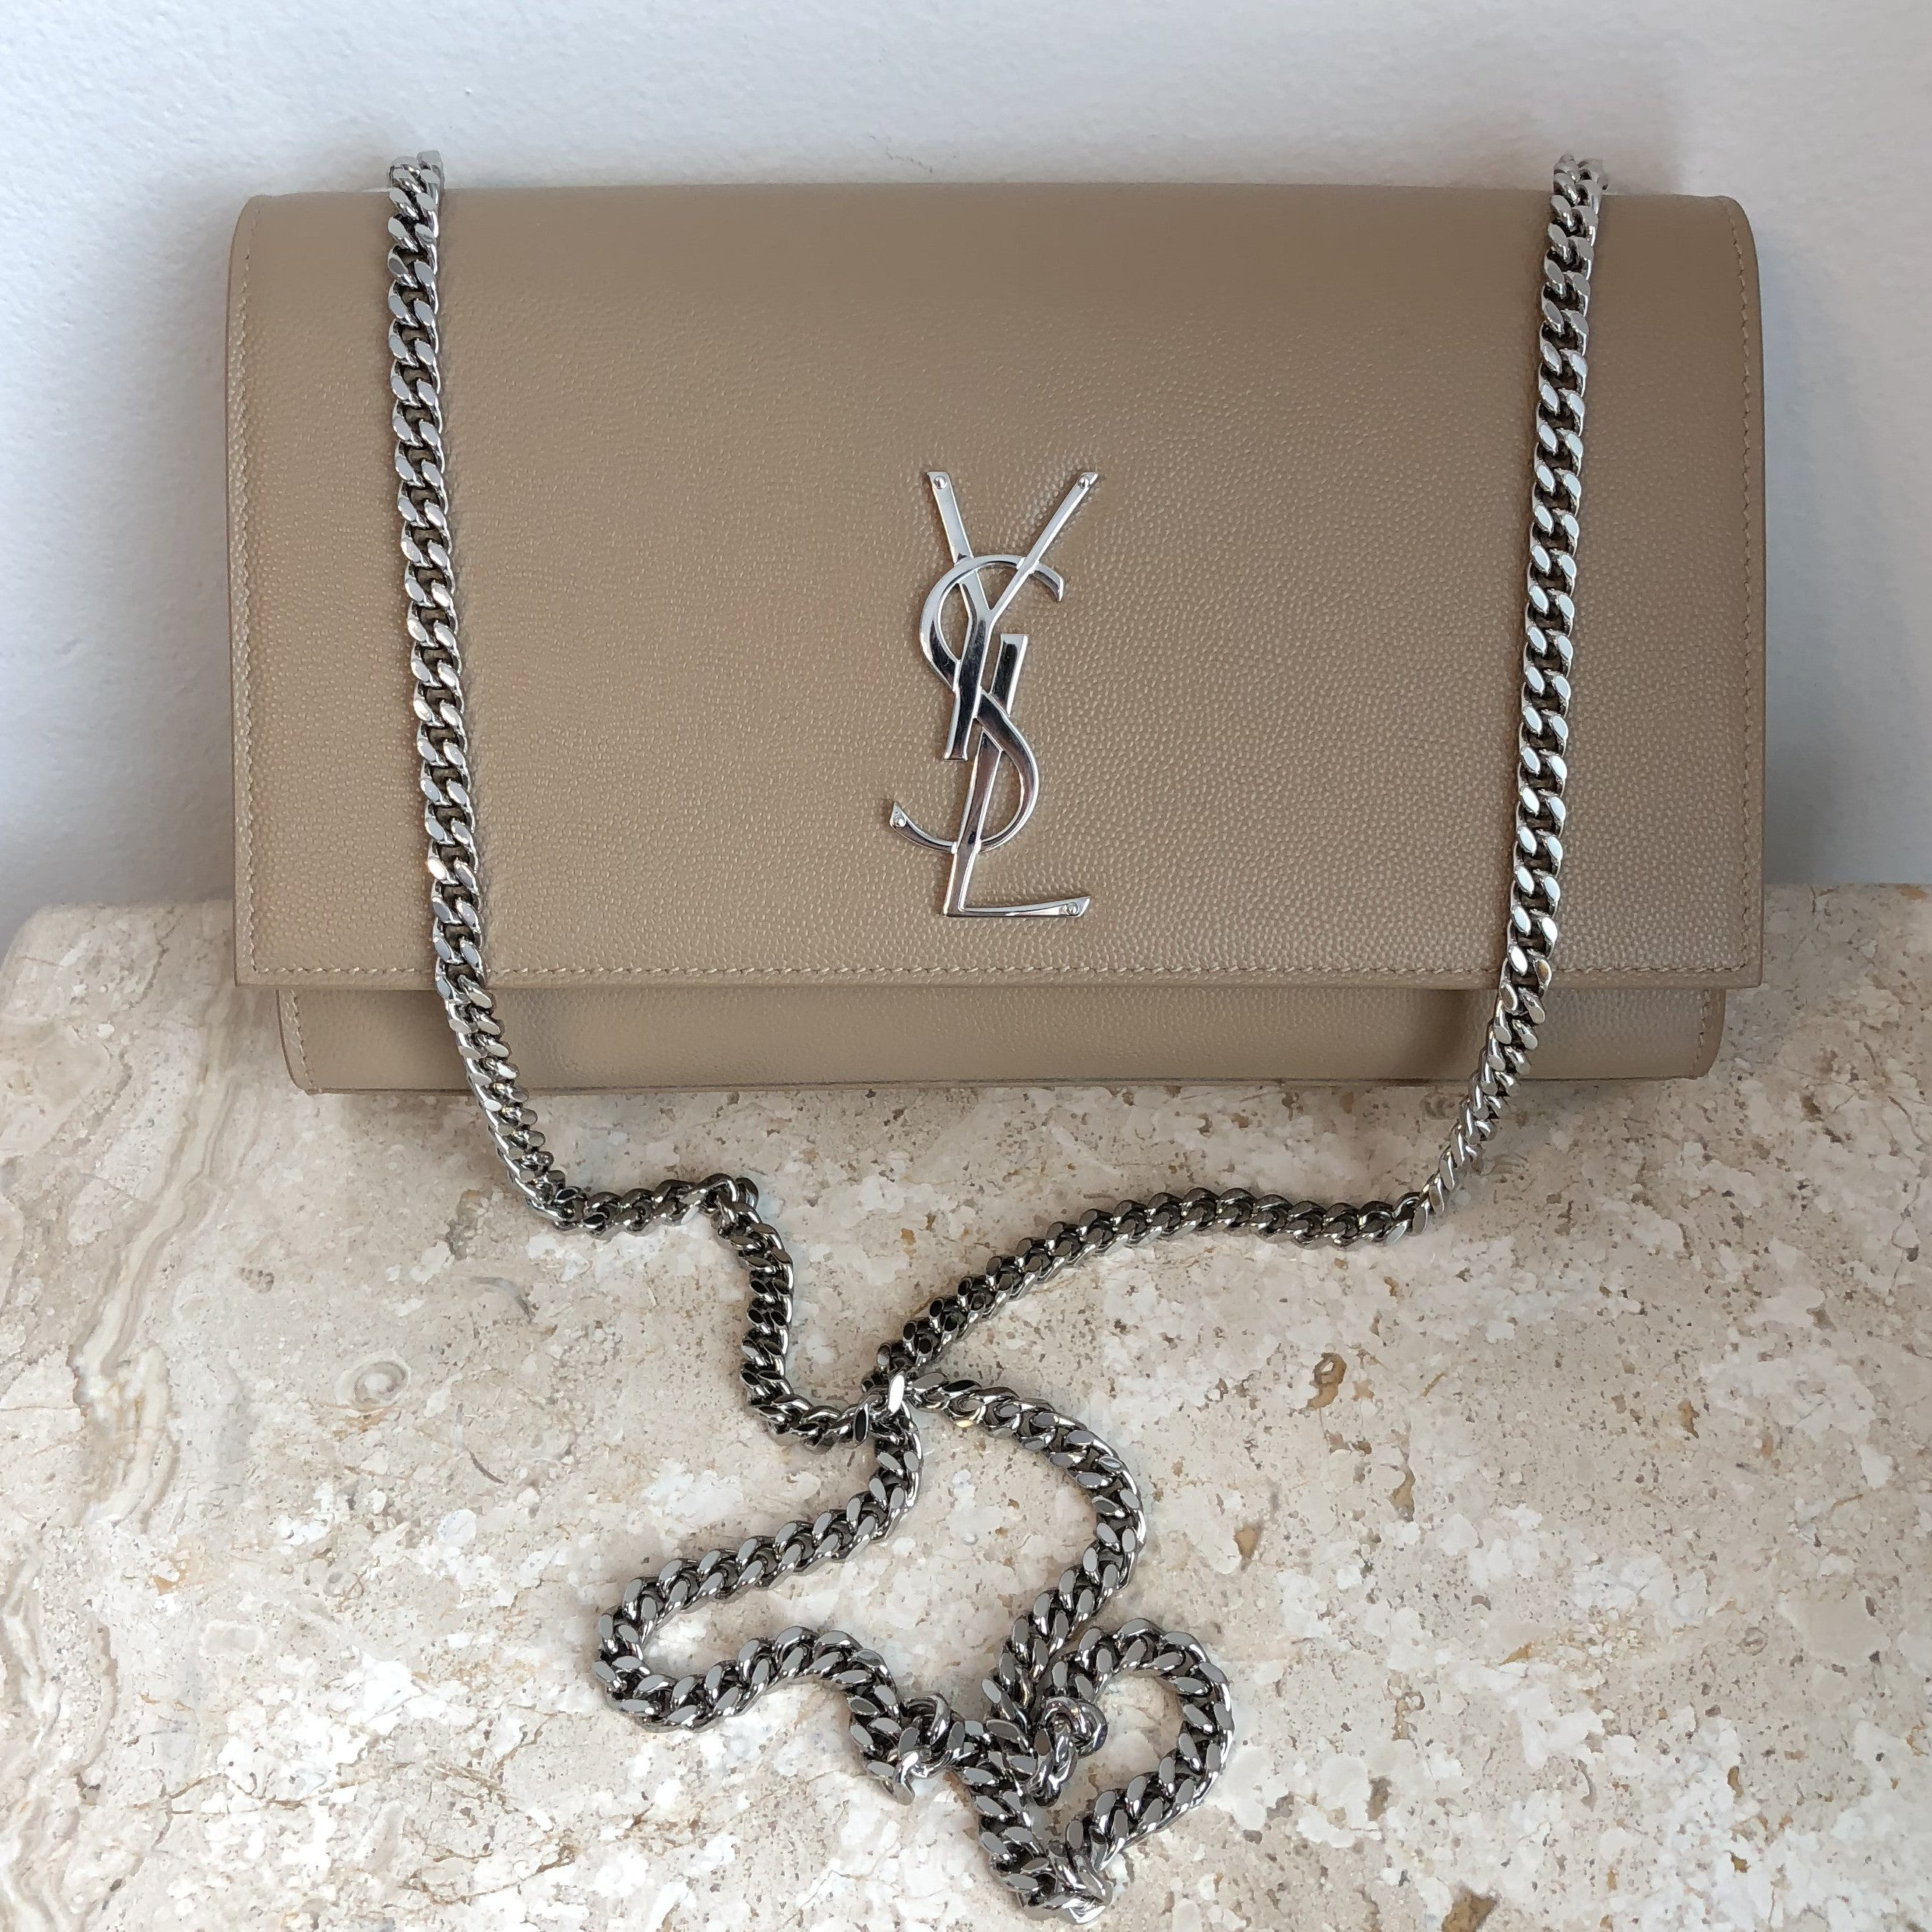 Authentic YVES SAINT LAURENT Medium Kate